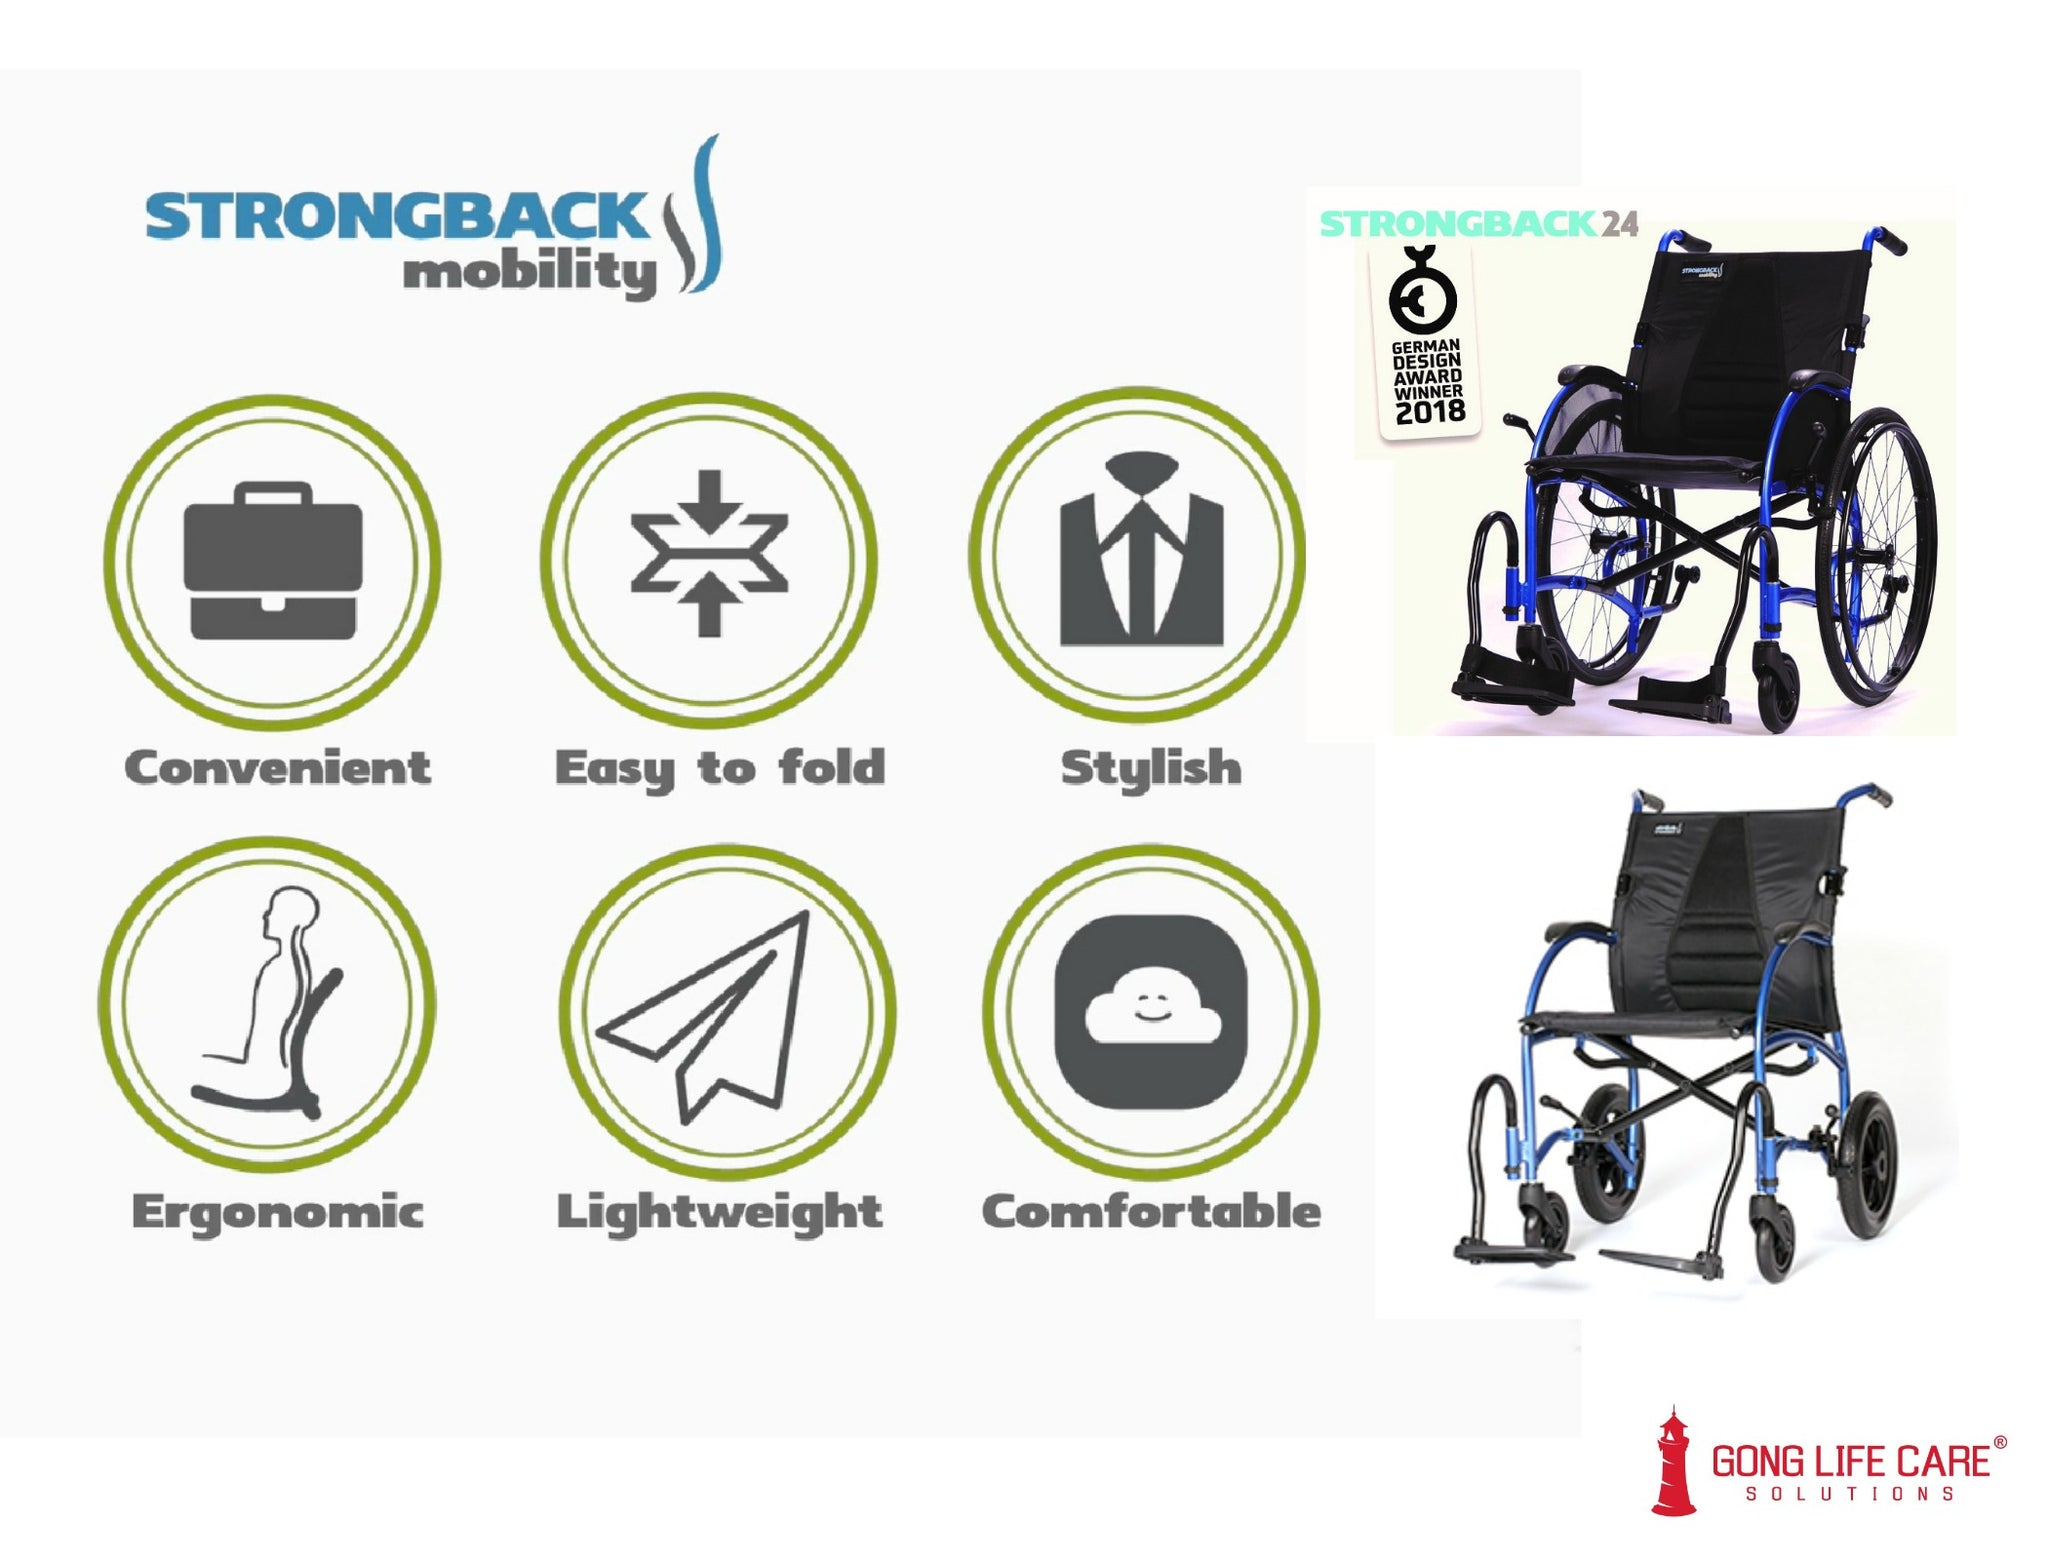 Assistive Technology, Mobility, STRONGBACK Wheelchair - Gong Life Care Solutions